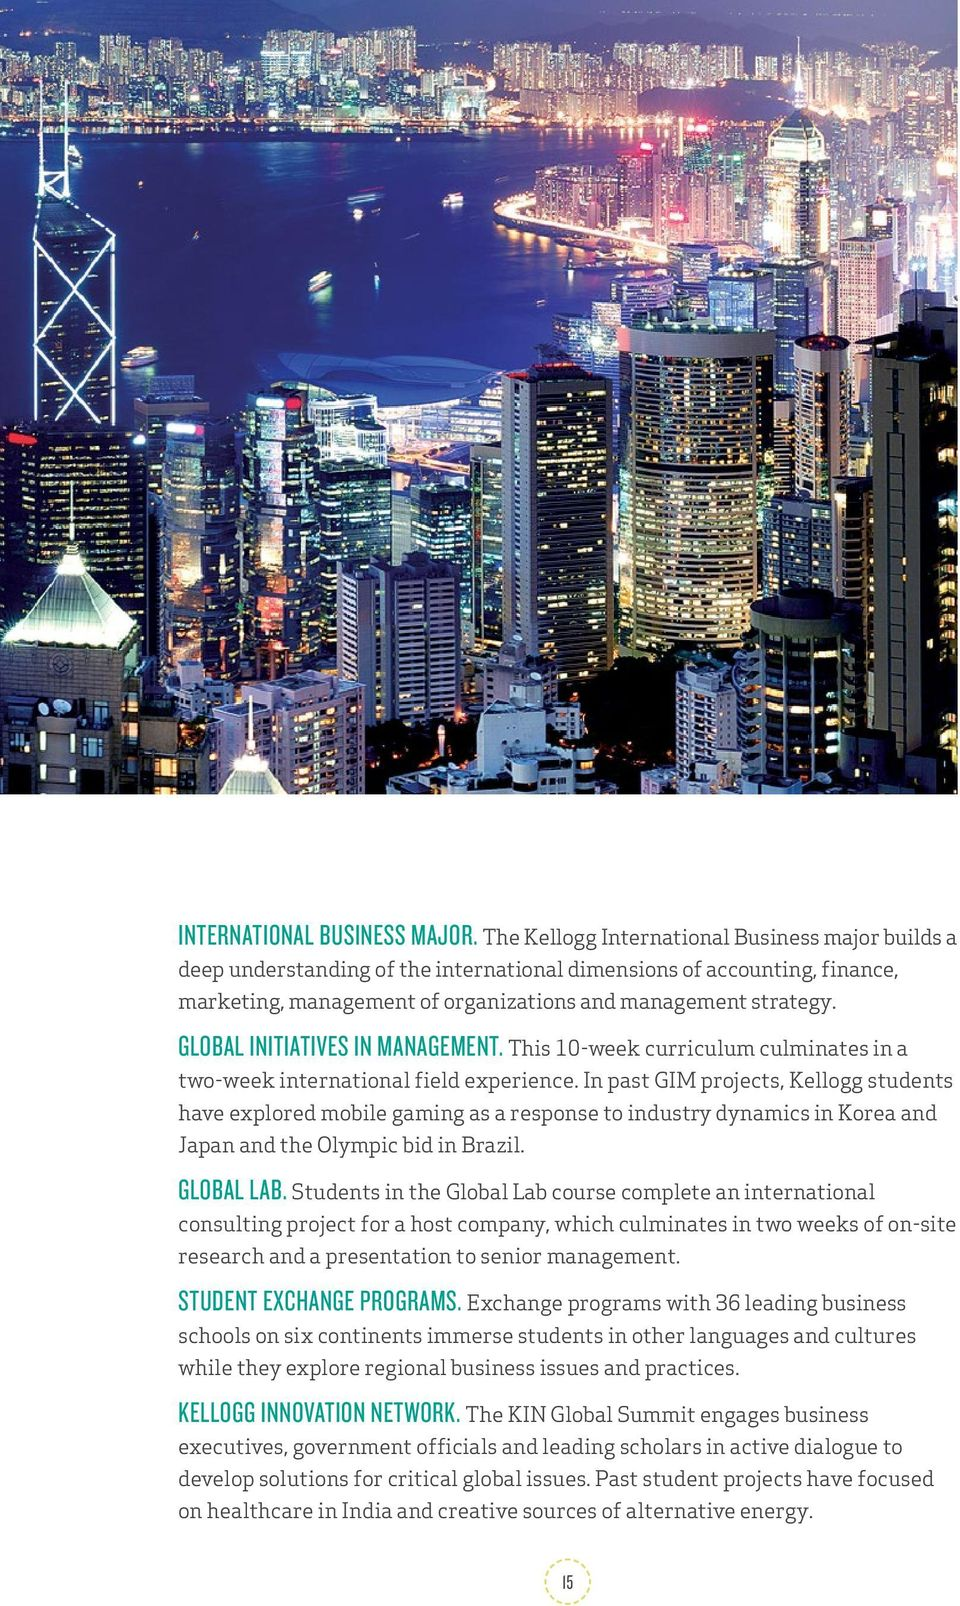 GLOBAL INITIATIVES IN MANAGEMENT. This 10-week curriculum culminates in a two-week international field experience.